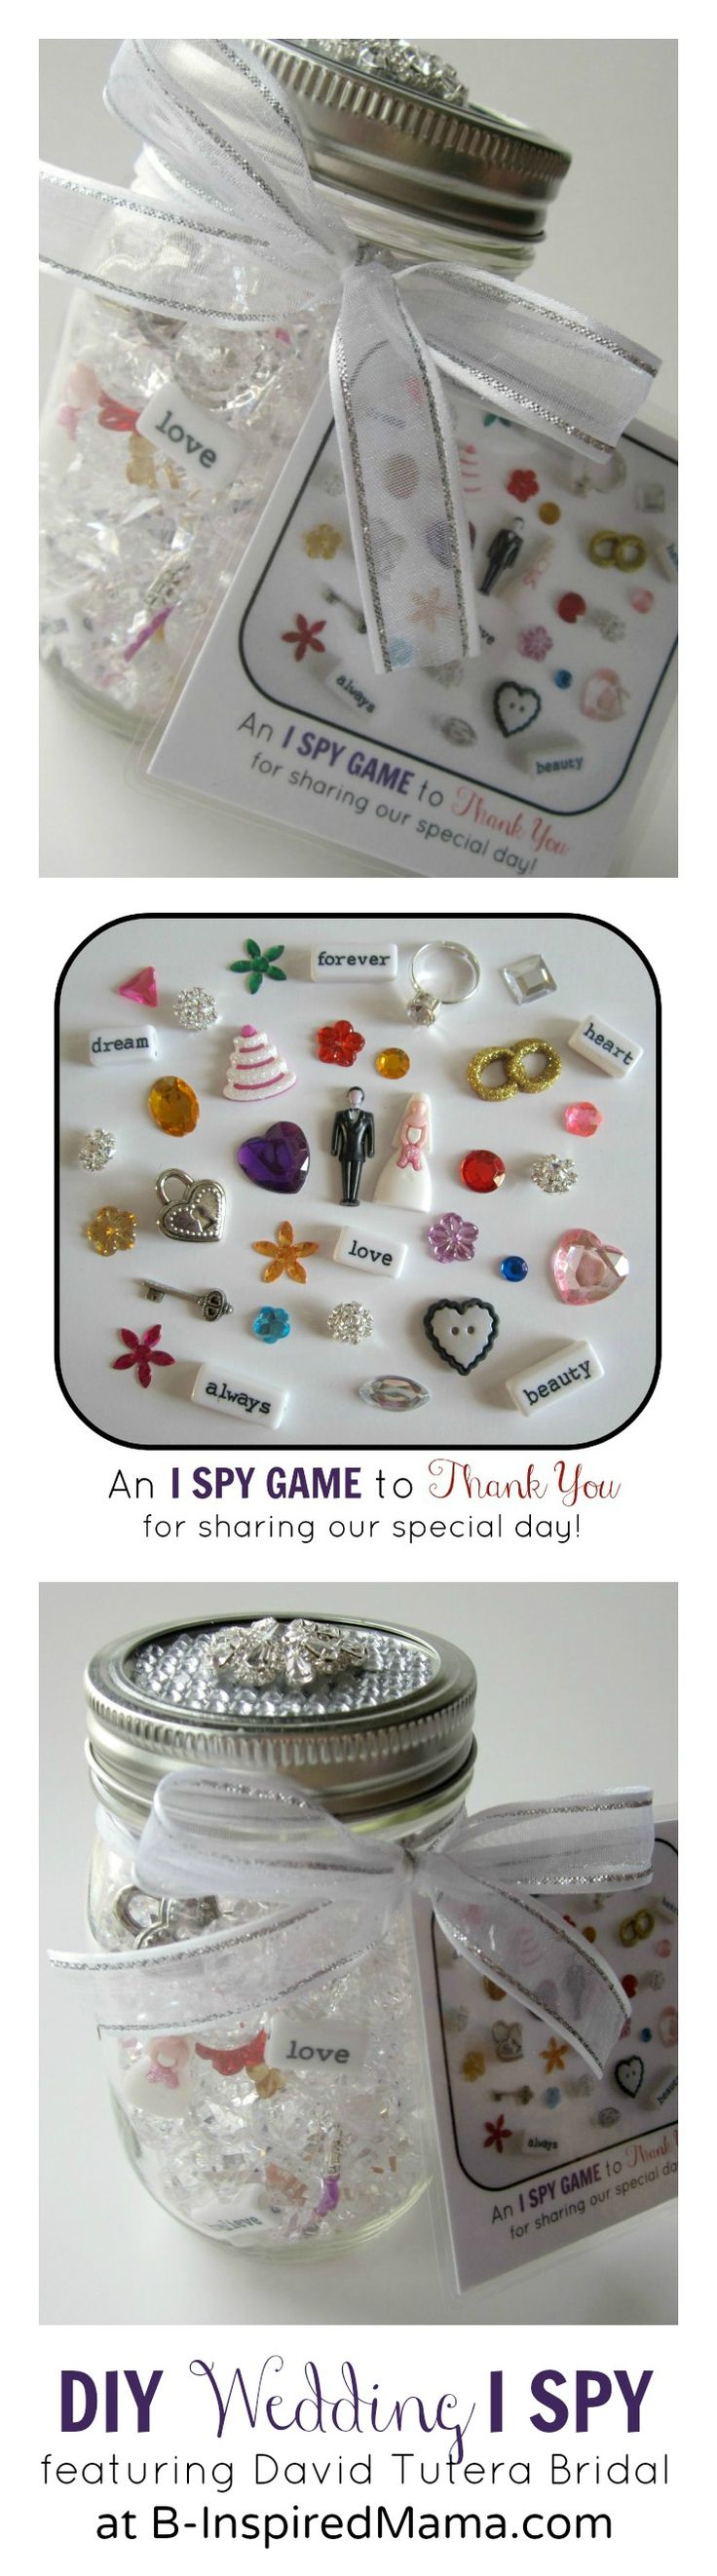 Did you do anything special for the kids at your wedding? Find out how to make a DIY I Spy Kids' Wedding Favor or Flower Girl gift using David Tutera Bridal Collection at B-InspiredMama.com. #DavidTuteraDIY